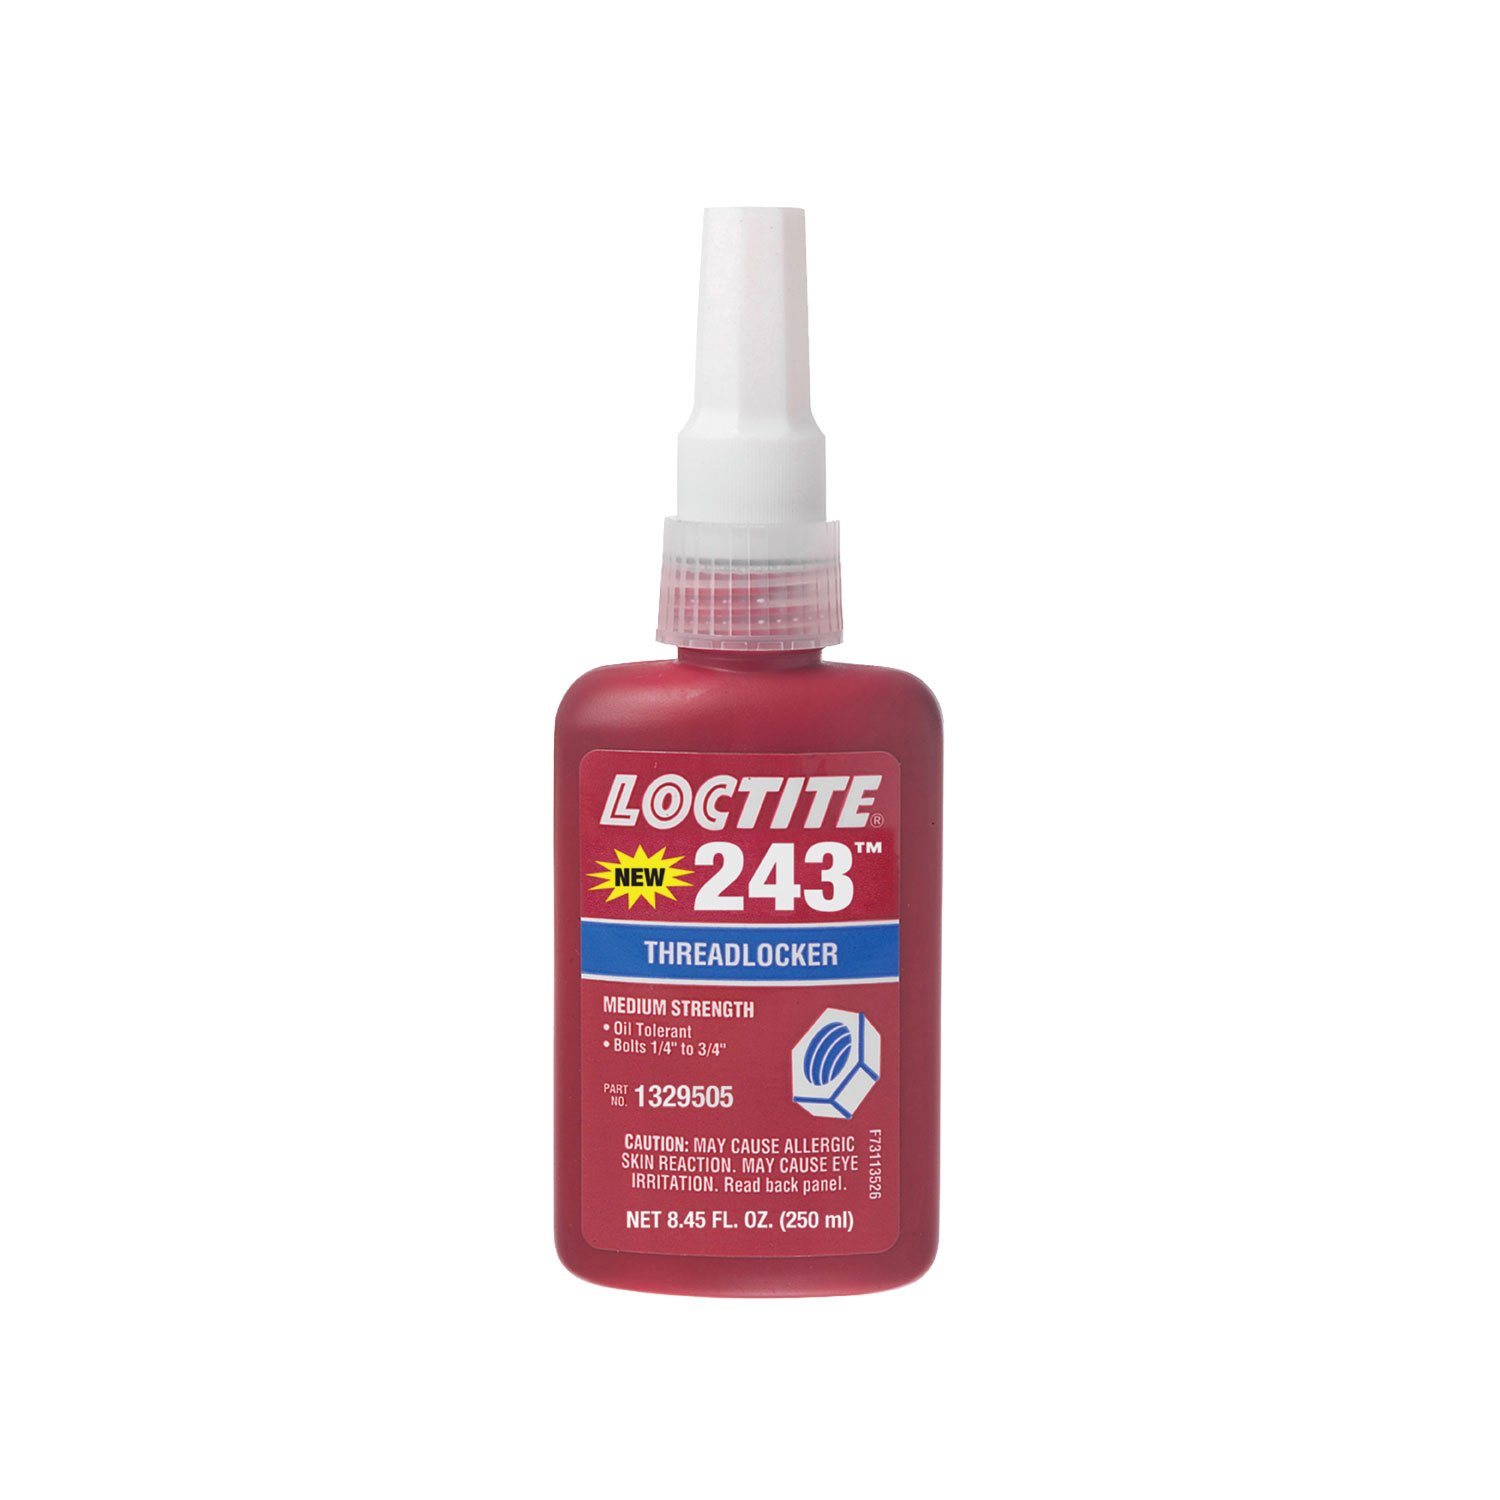 Loctite 1329505 Blue 243 Medium Strength Threadlocker, 360 Degree F Maximum Temperature, 250 mL Bottle